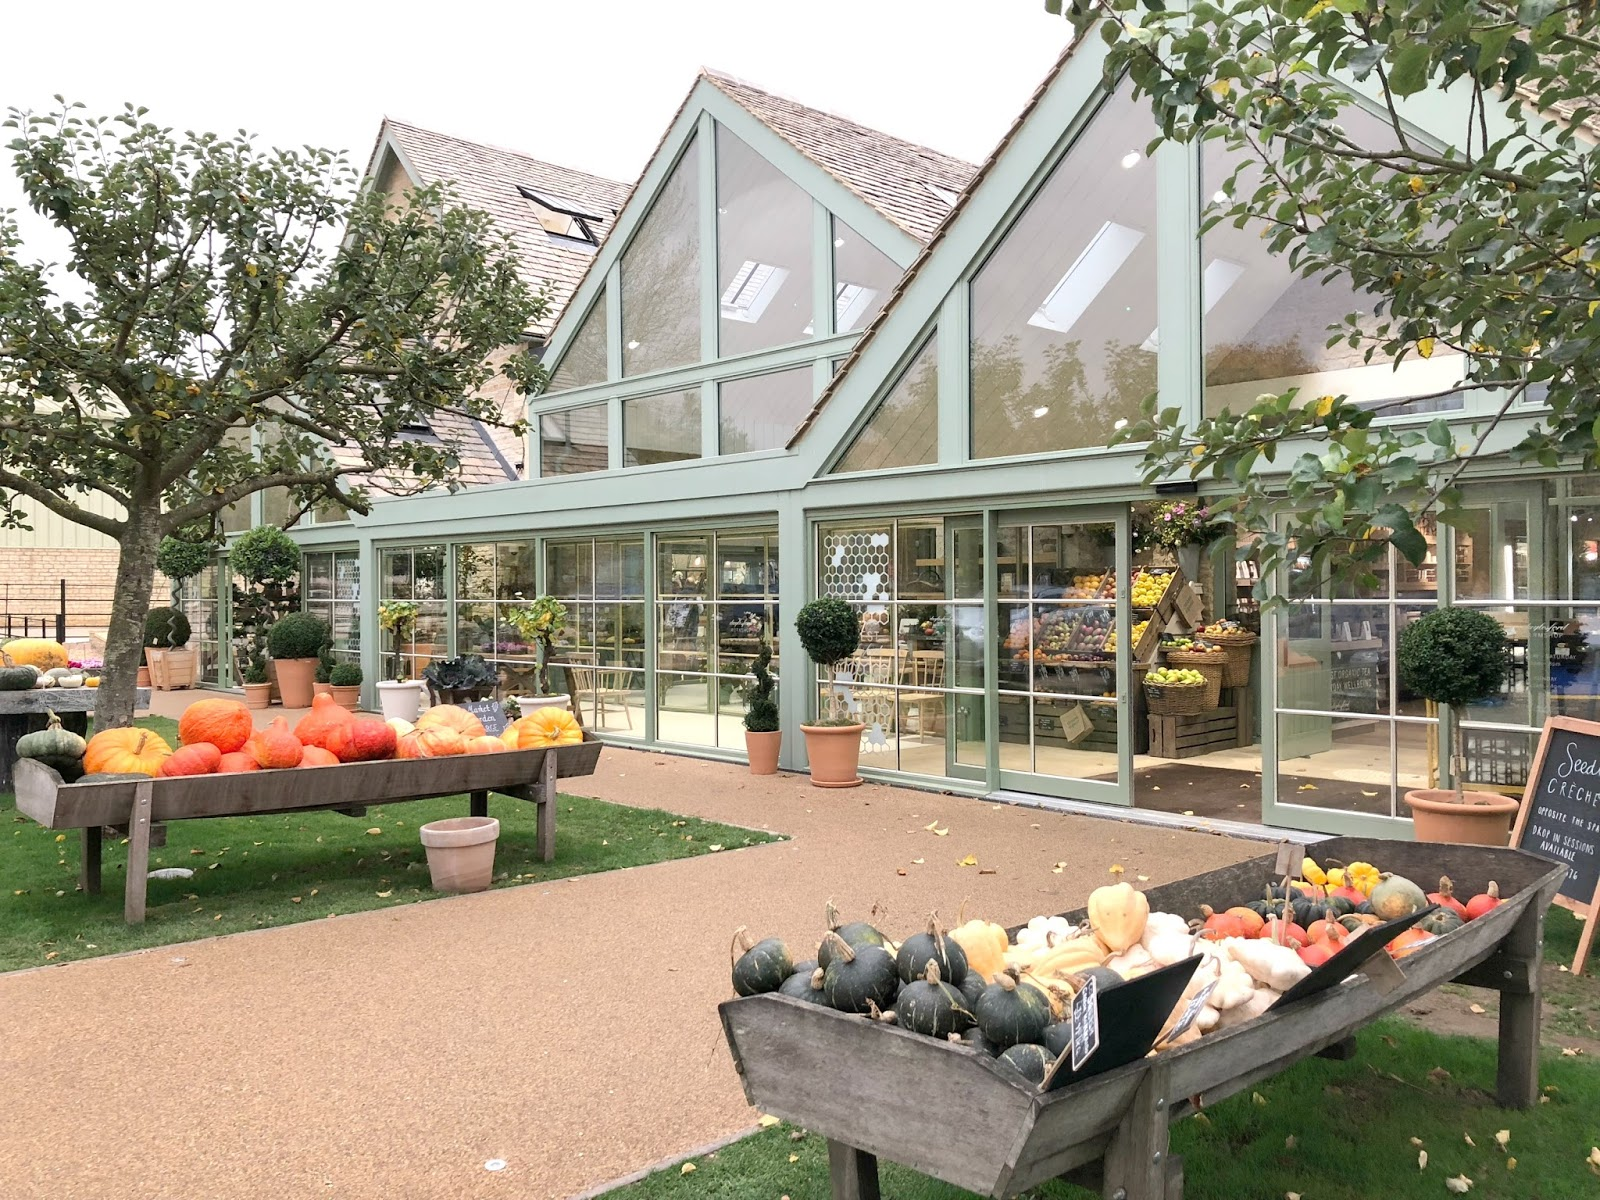 Spend a day in the Cotswolds - Daylesford Farm